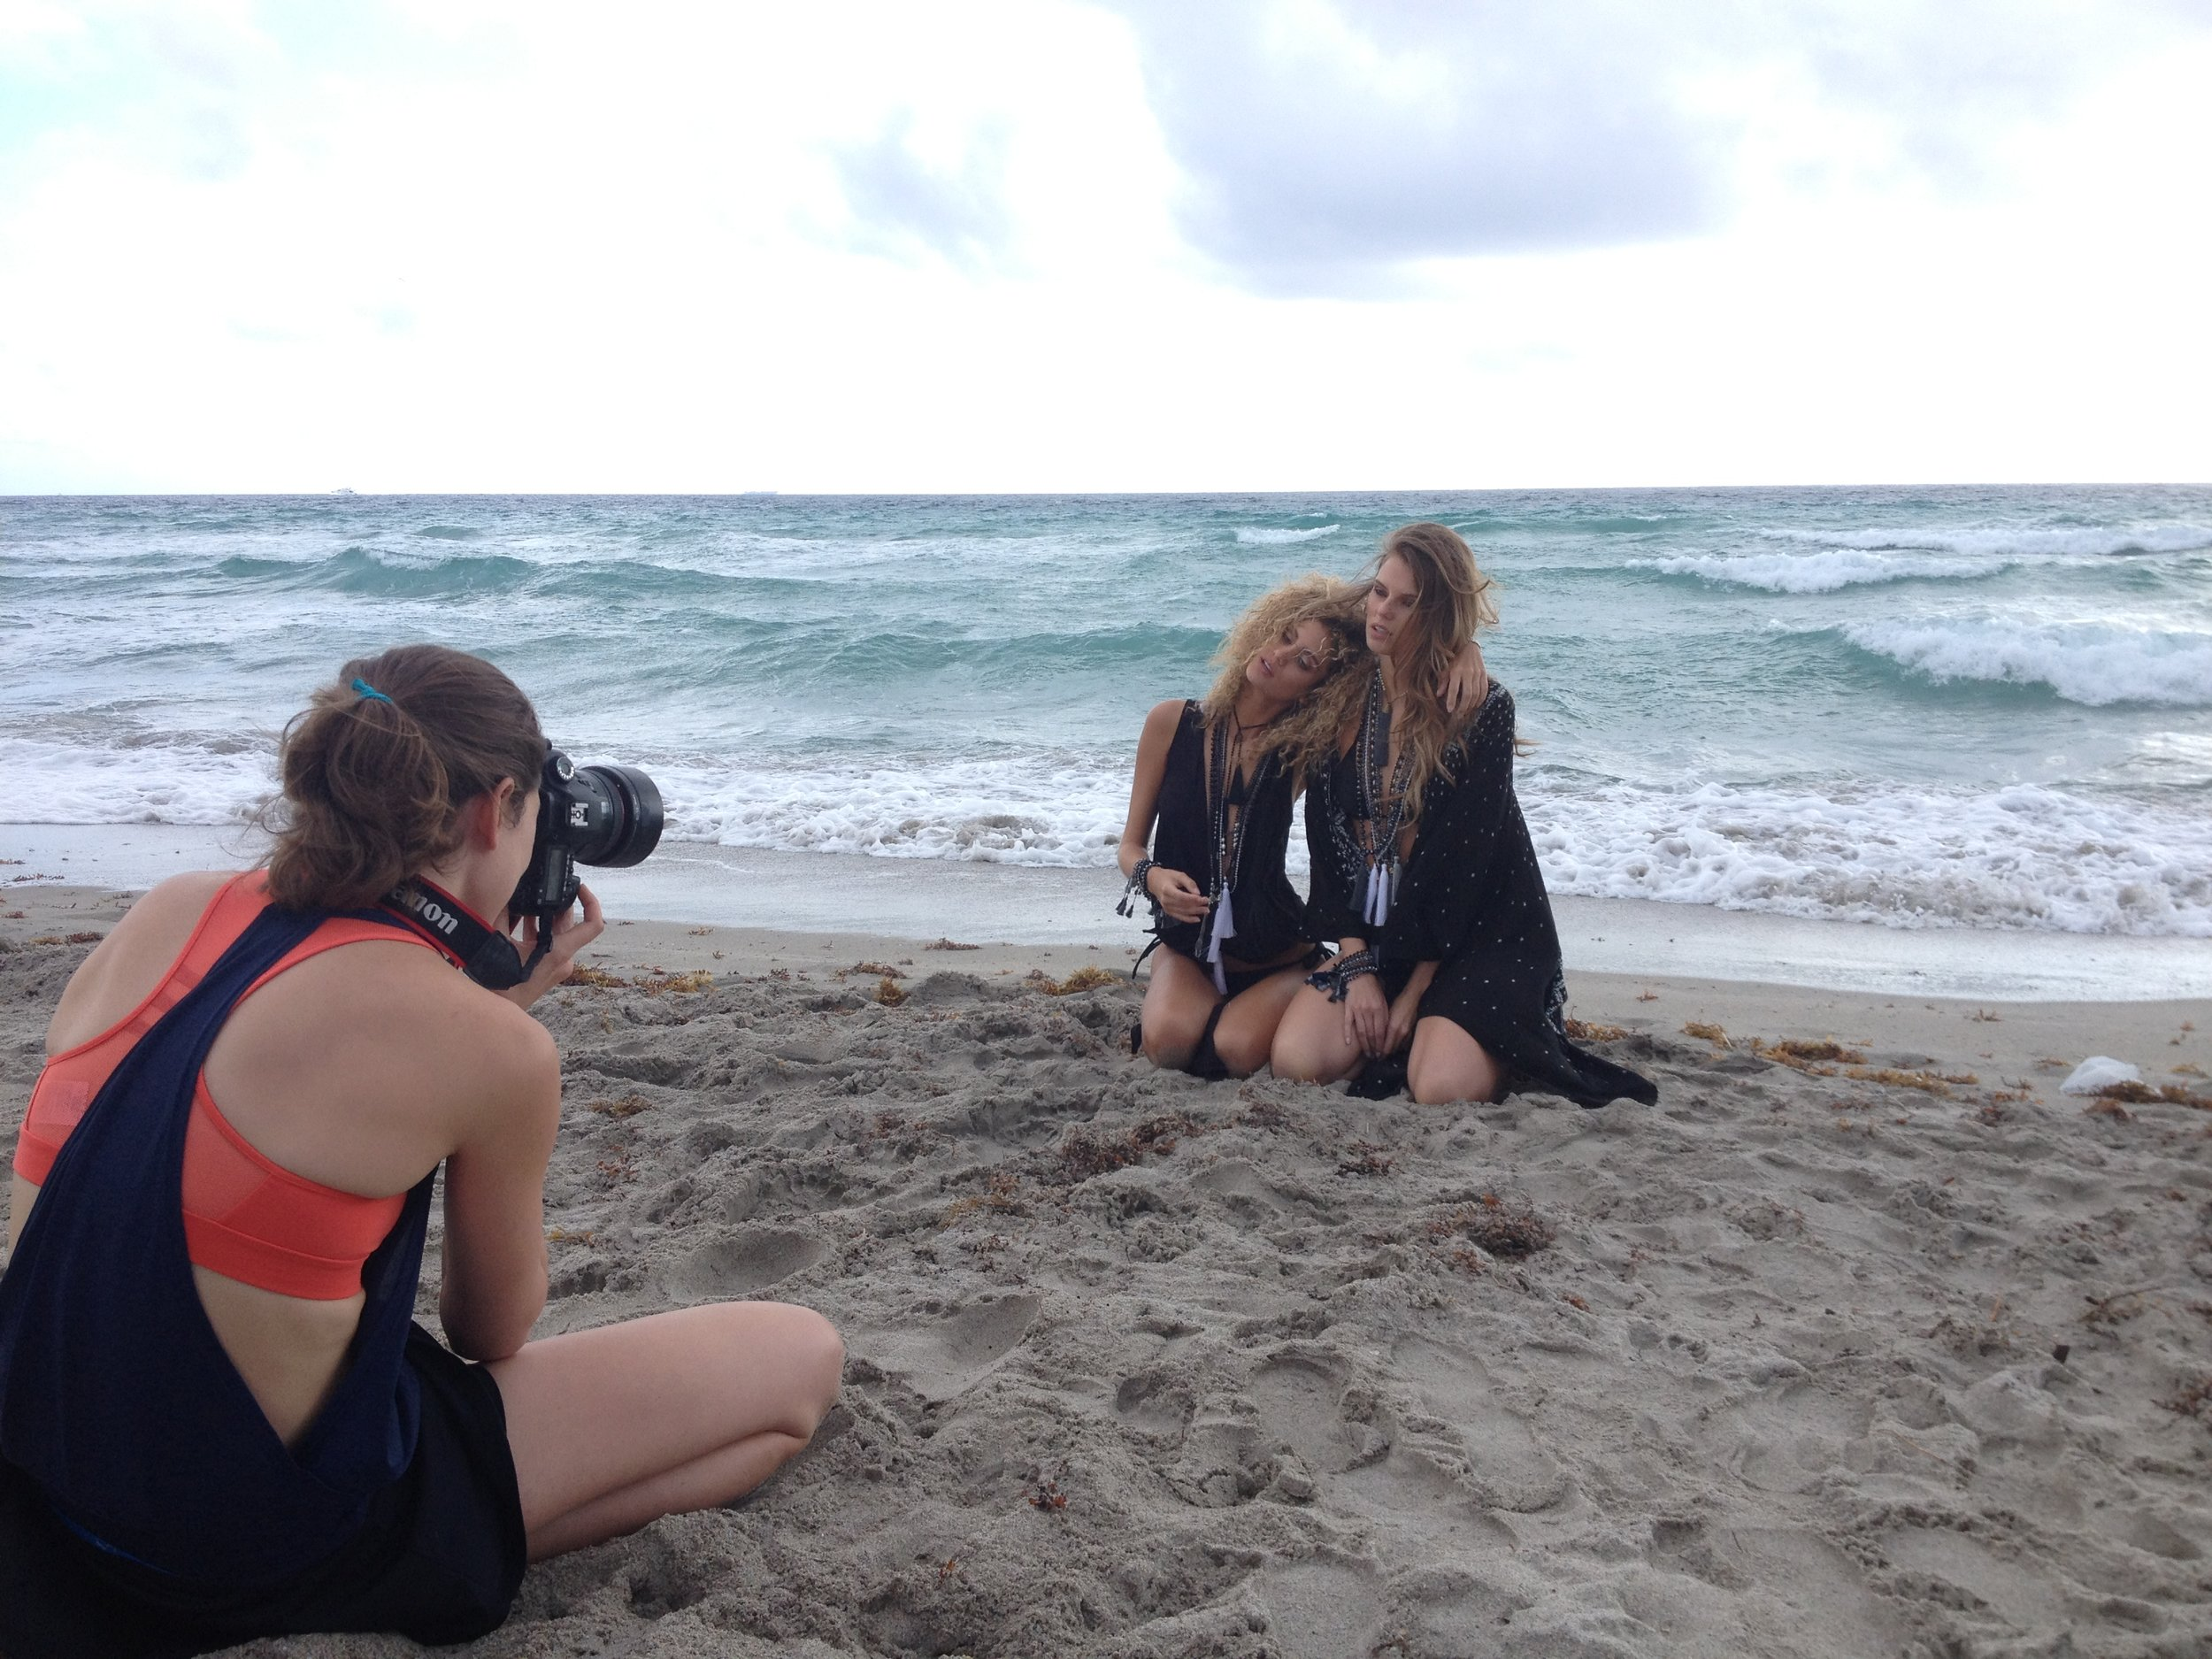 Shooting Laura and Ailidh together .